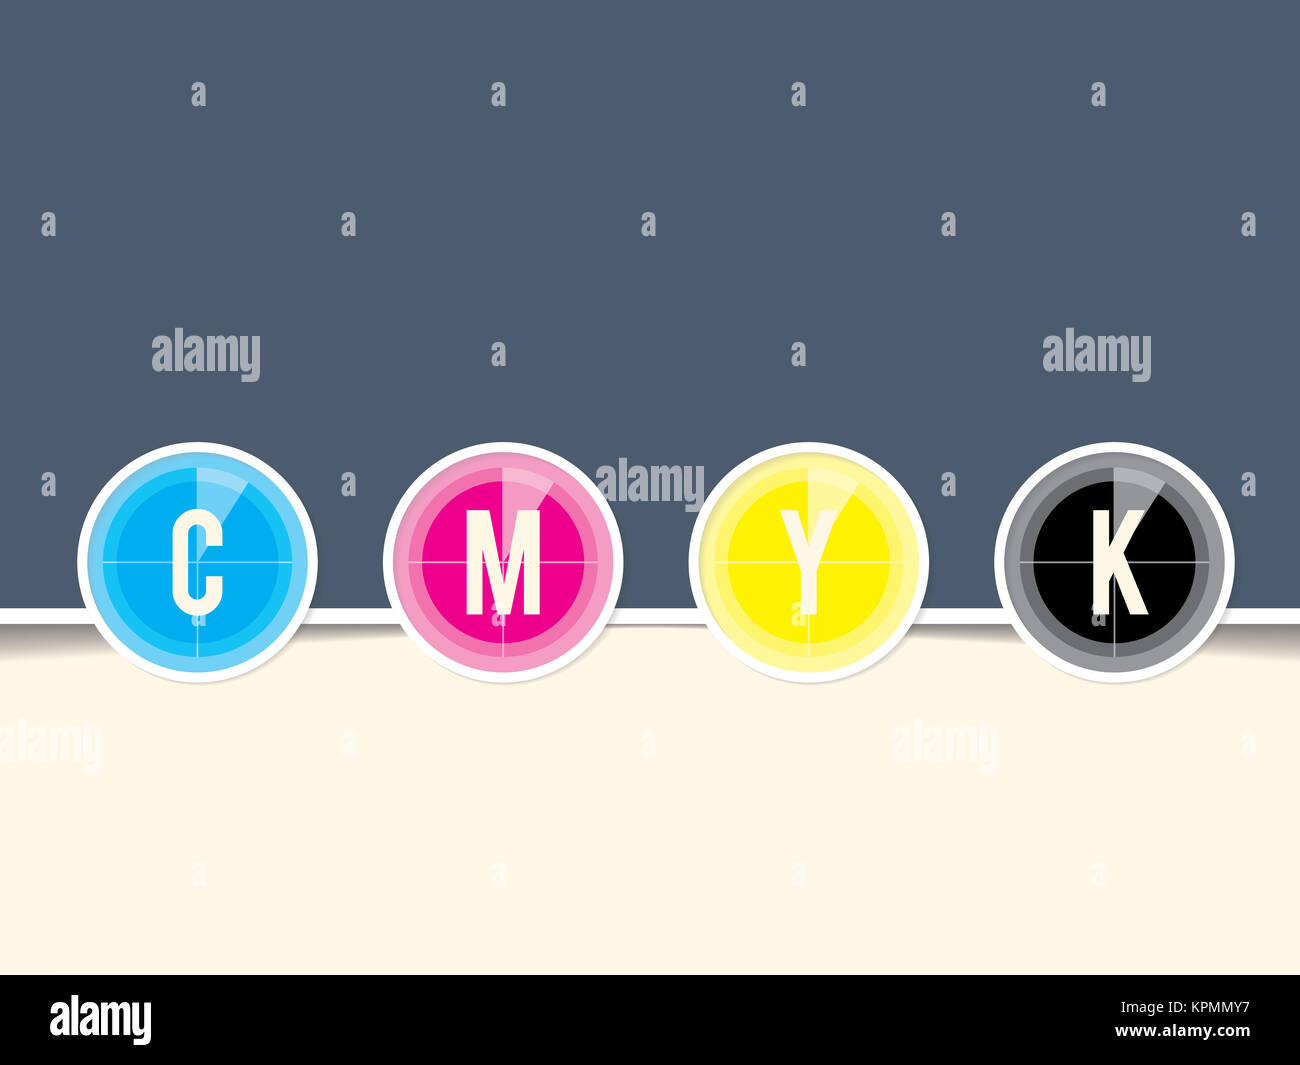 Cmyk background with countdown design - Stock Image